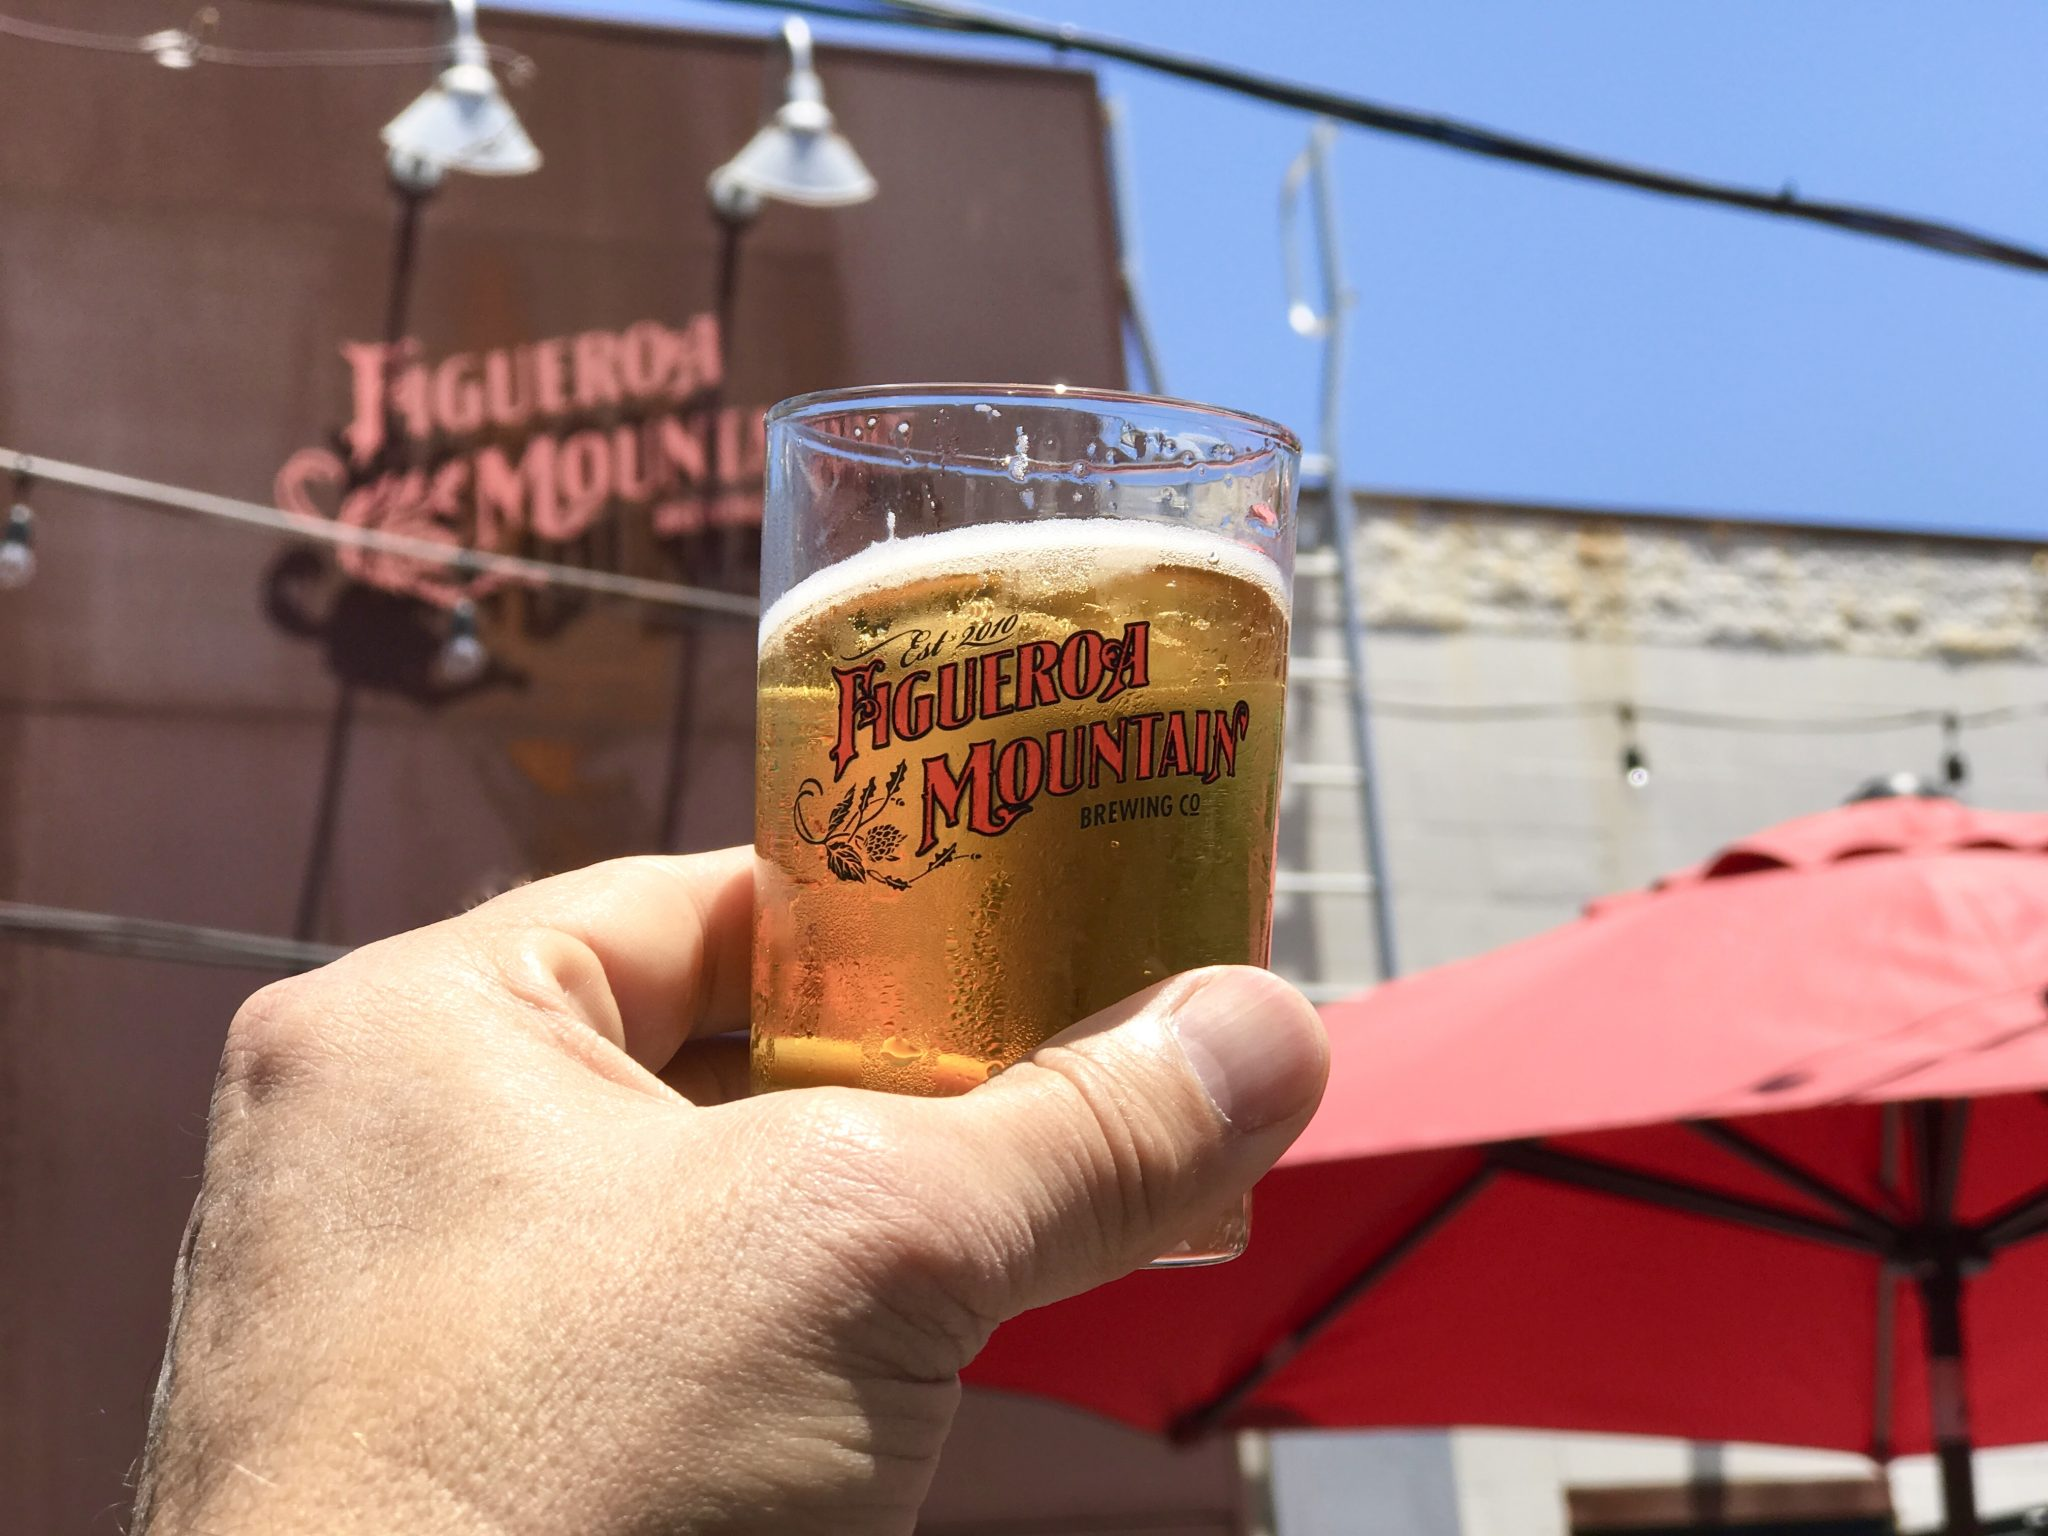 beer tasting at Figueroa Mountain Brewing Co.